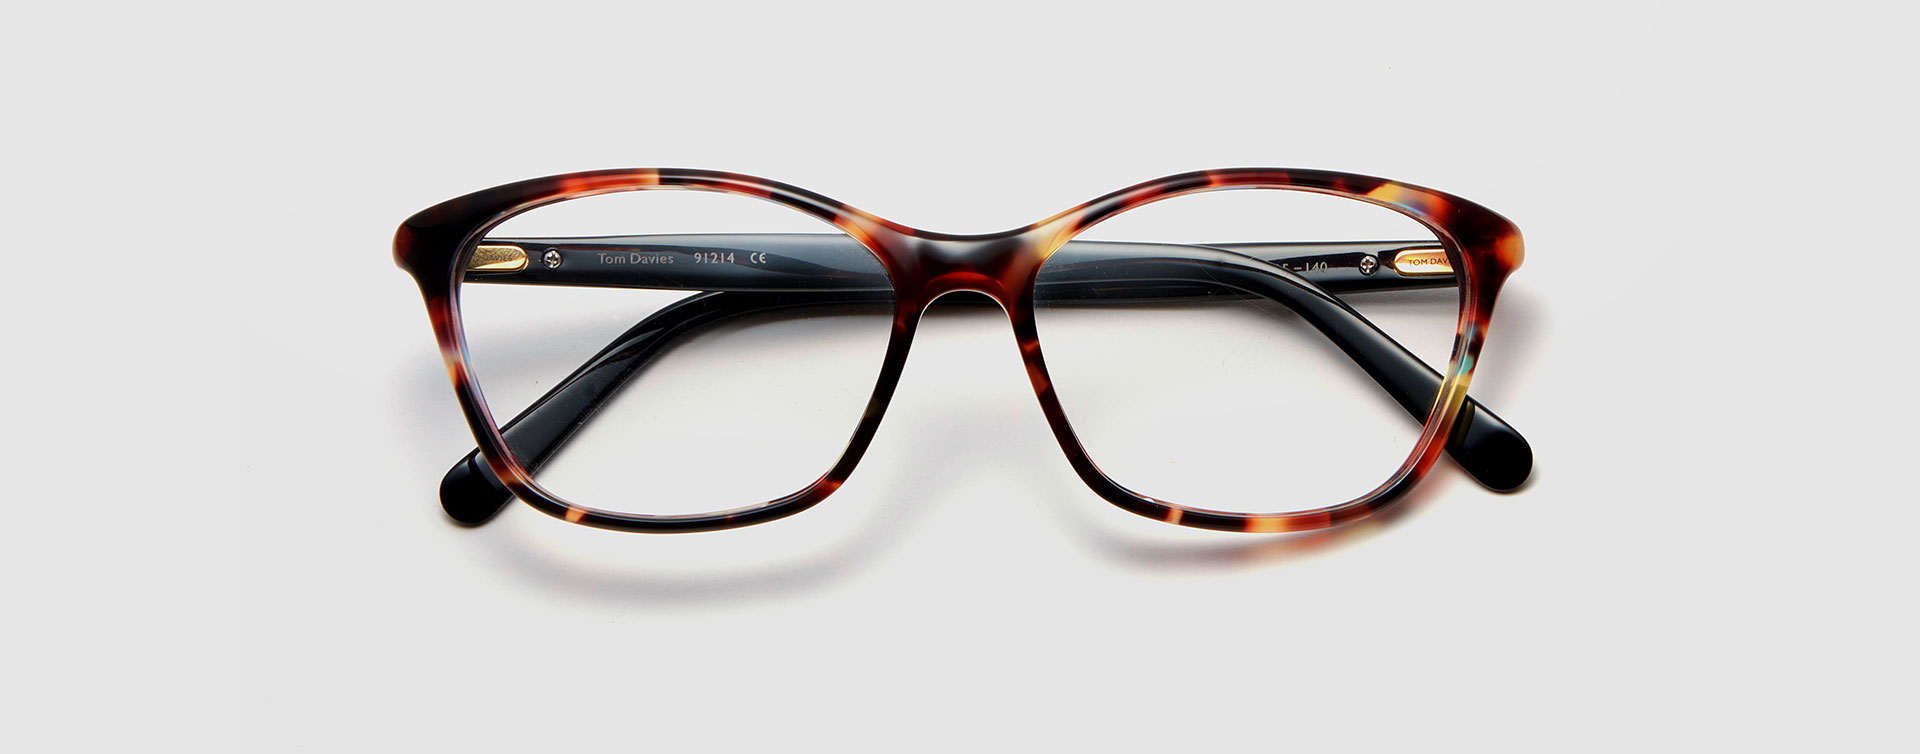 Limited edition acetate frame LE91214 by British eyewear brand Tom Davies